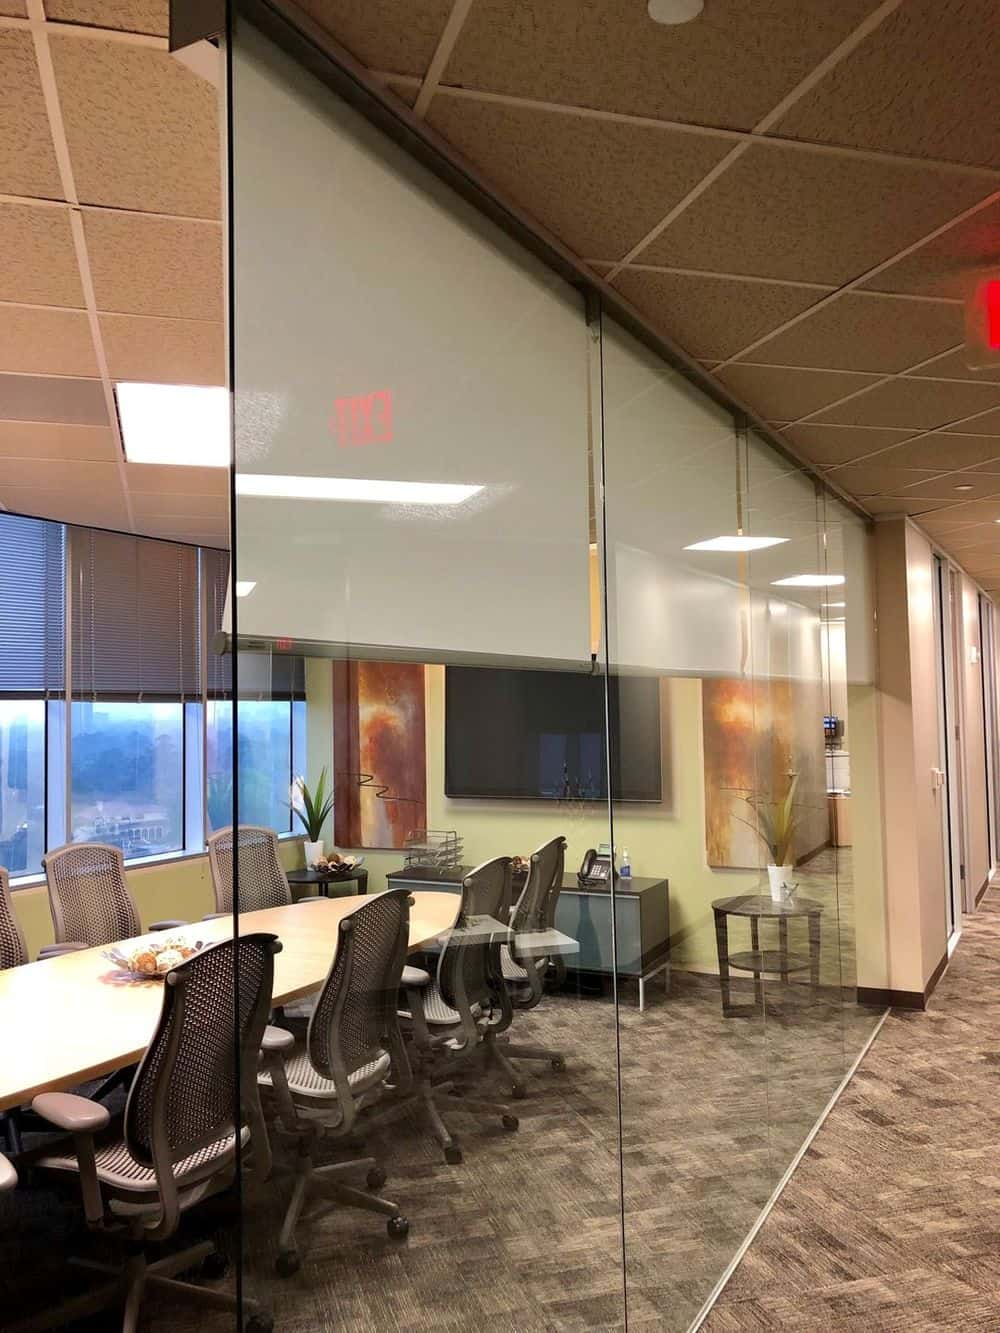 An office conference room featuring large glass walls, custom tiles ceiling and stylish carpet flooring. The room boasts a long rectangular table with modern office chairs, along with a large widescreen TV on the wall.